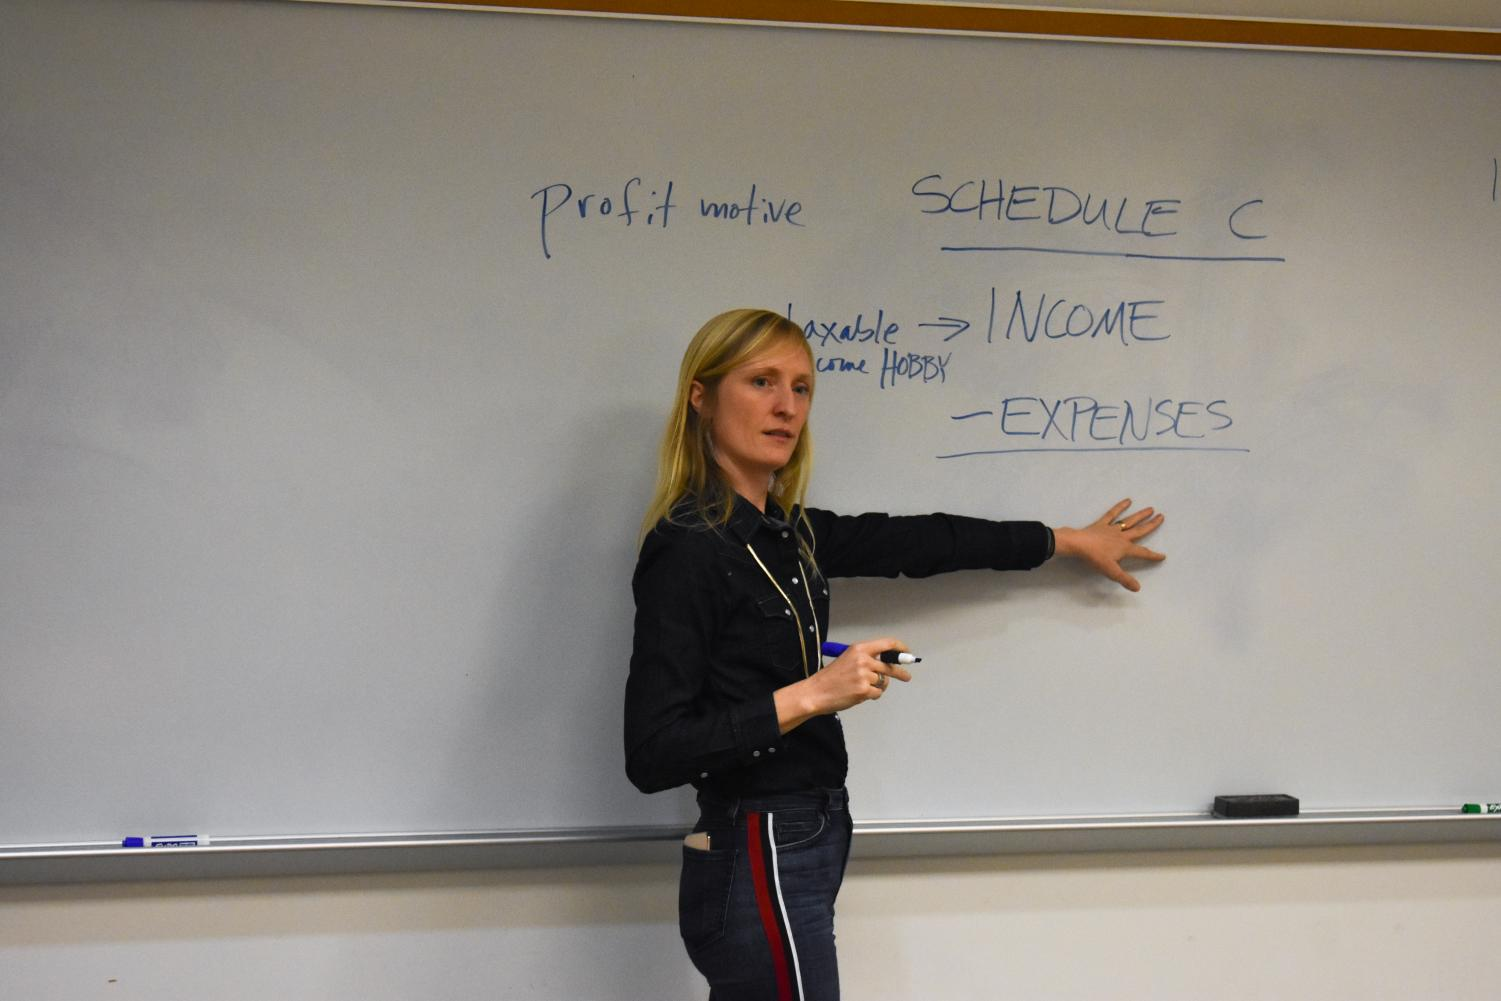 Speaker Hannah Cole explains filing taxes to creative entrepreneurs and artists.